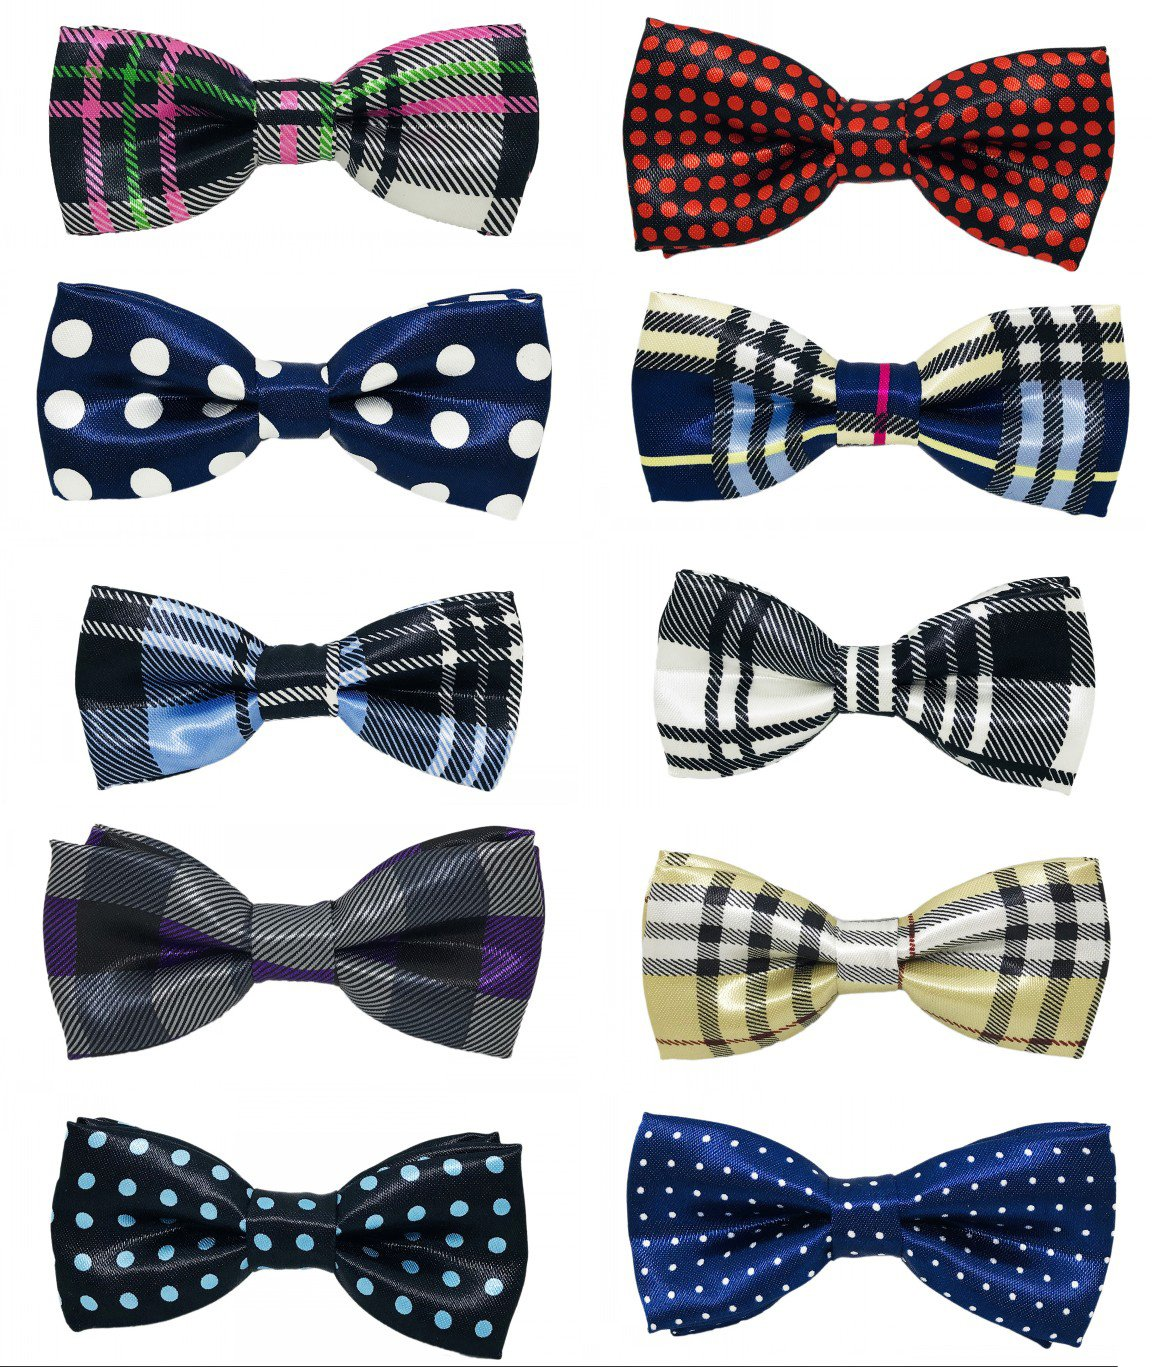 PET SHOW Pet Small Dogs Collar Attachment Bow Ties Puppies Cats Collar Charms Accessories Slides Bowties for Birthday Wedding Parties Assorted A Style Assorted Plaid Dot Styles Pack of 10